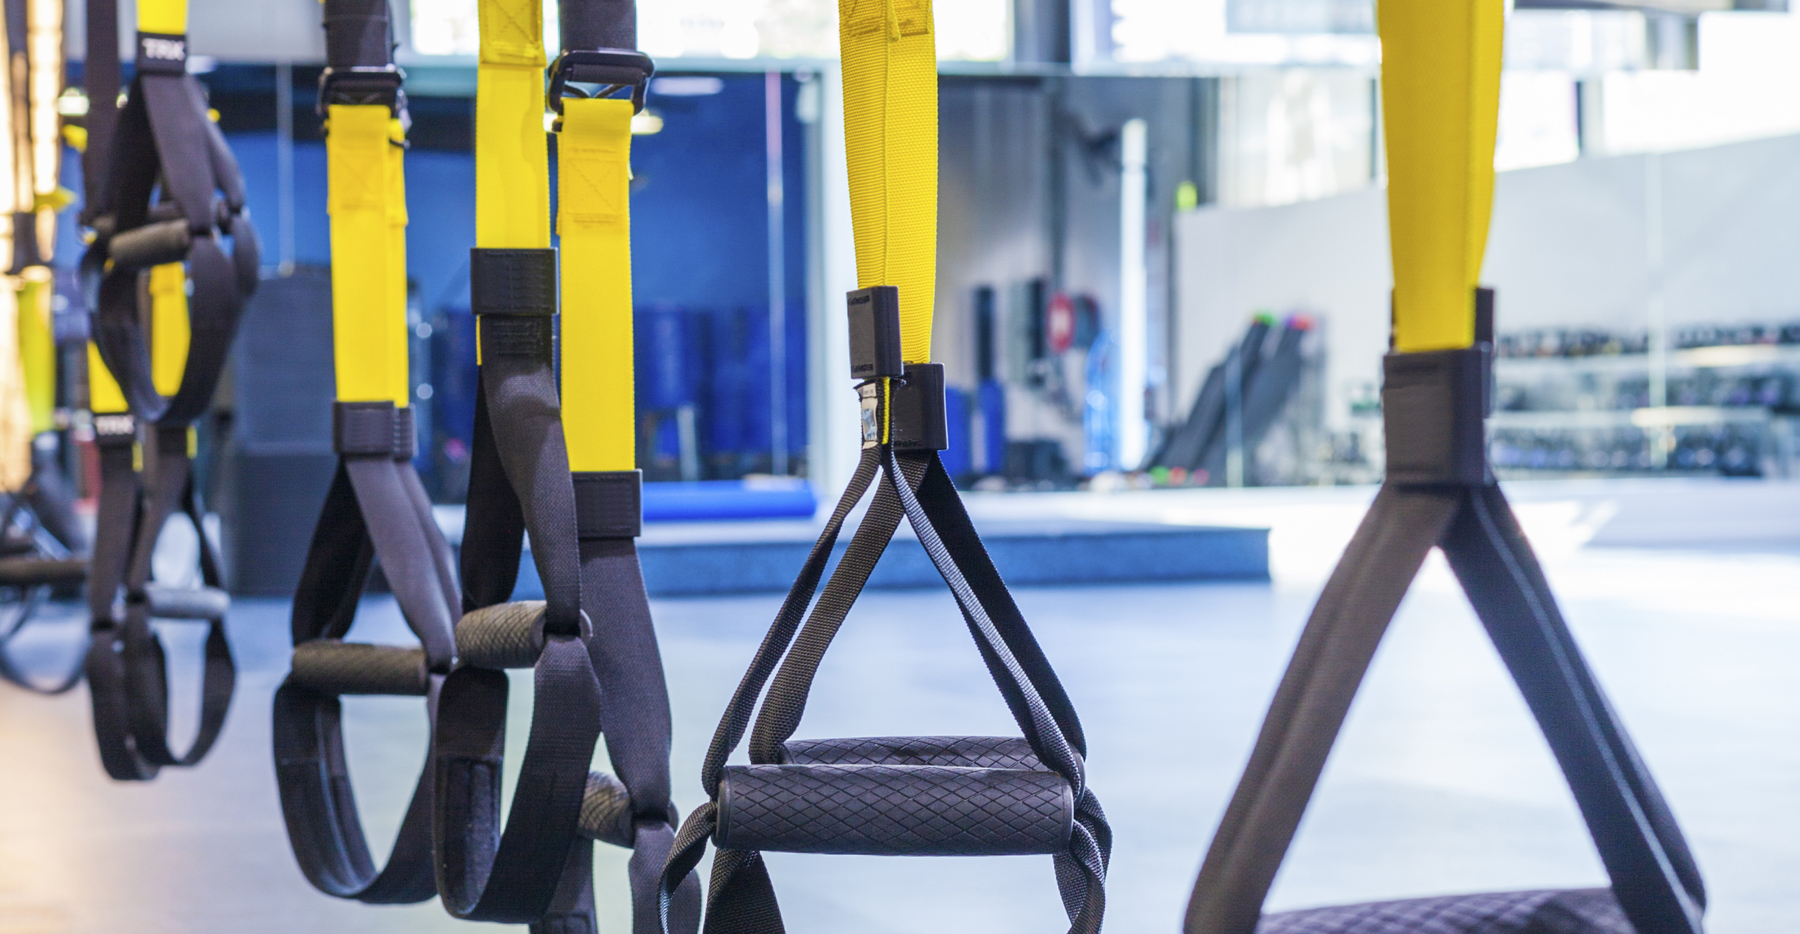 Trx Workouts 44 Insanely Effective Exercises Greatist Hand Do To The Body Handle It Pulls Up Free Diagram For